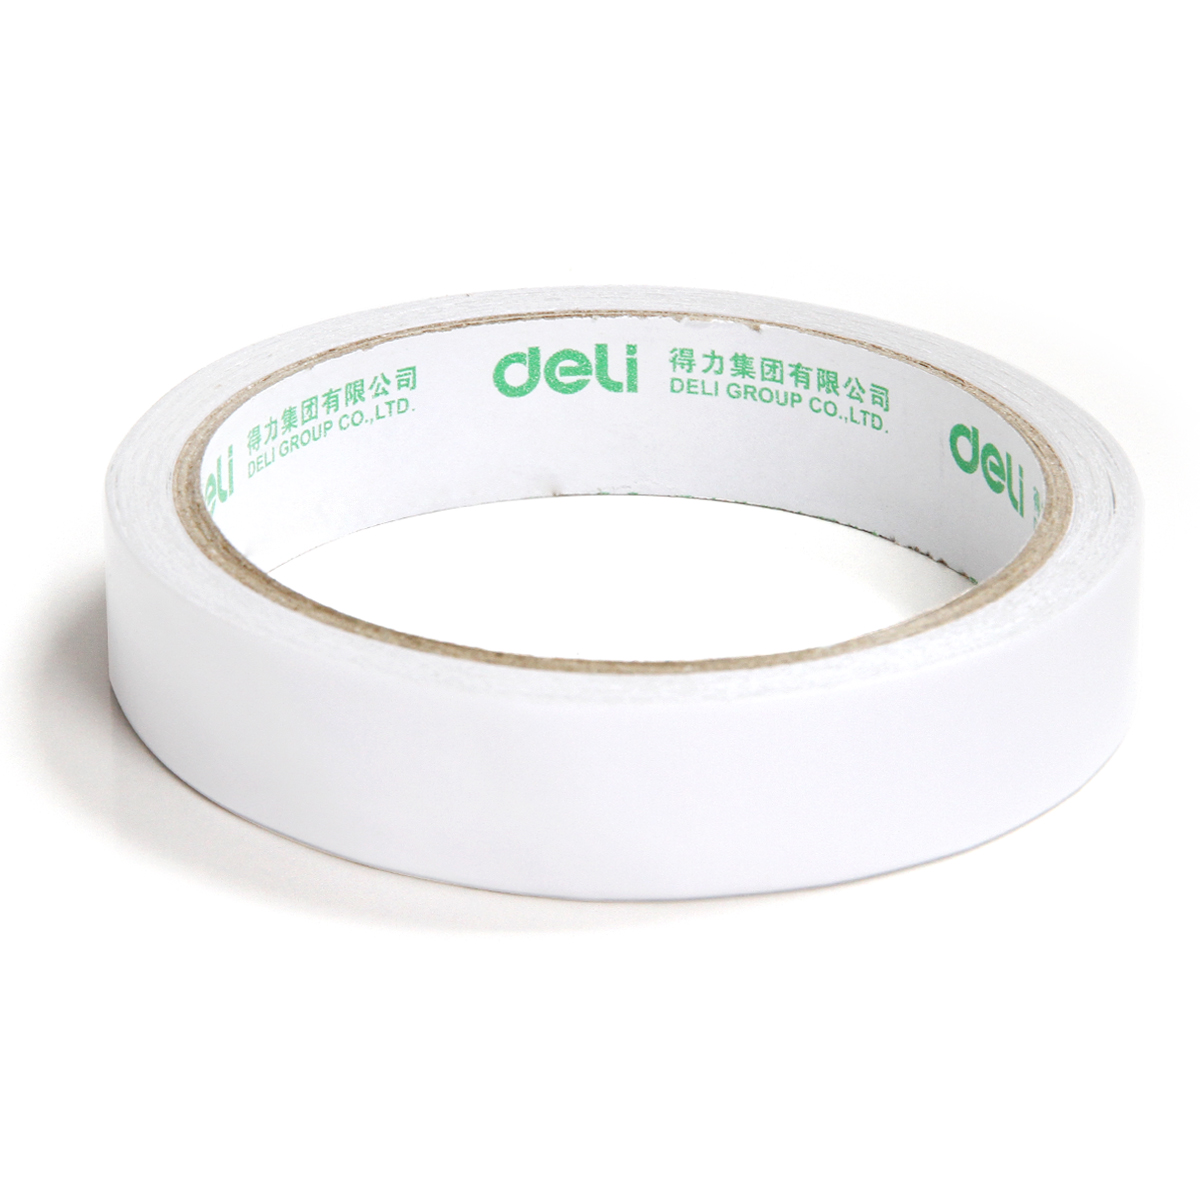 Deli 18mm x 10y / 18mm x 9.1m Double-Sided Tape White Strong Sticky Glue Tape Powerful Doubles Faced Adhesive For Office 1 pcs deli 2 4cm 10y super slim strong adhesion white double sided tape doubles faced adhesive for office supplies